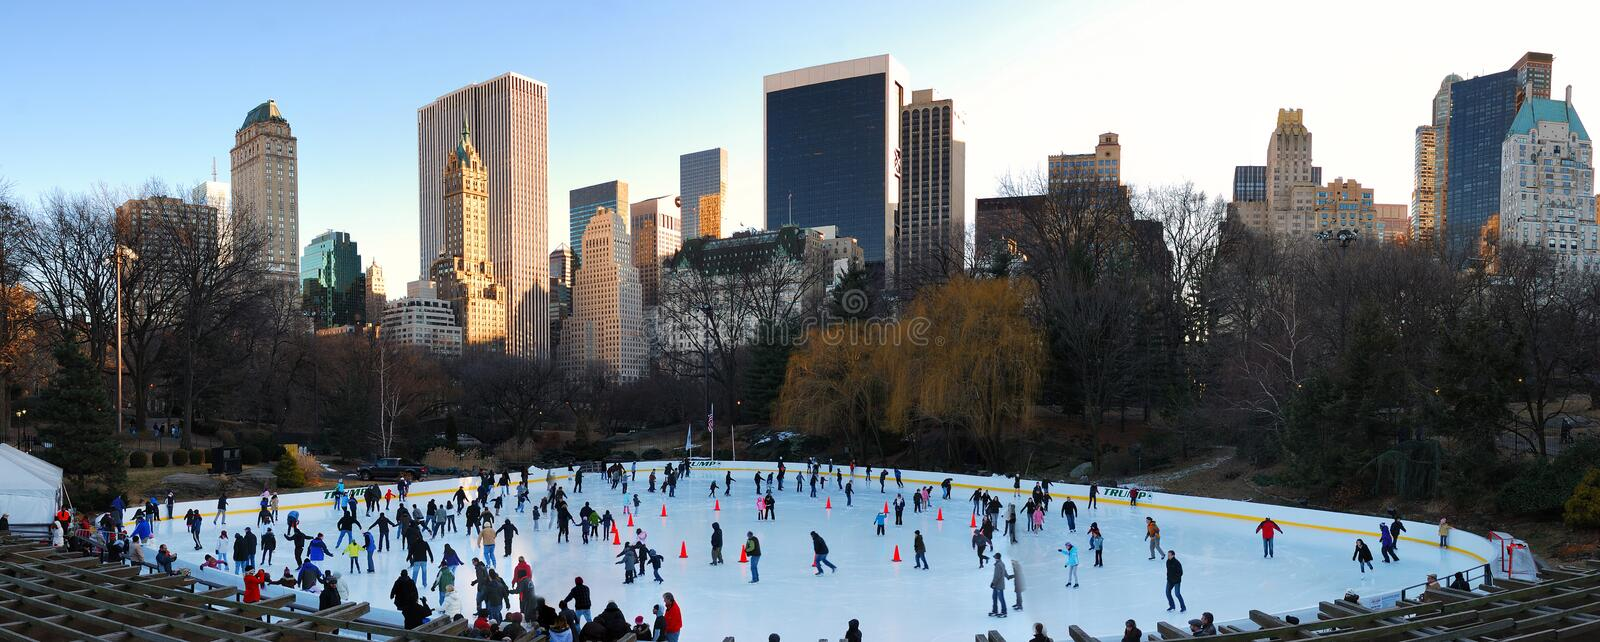 Panorama de Central Park Iceskate, New York City photo libre de droits